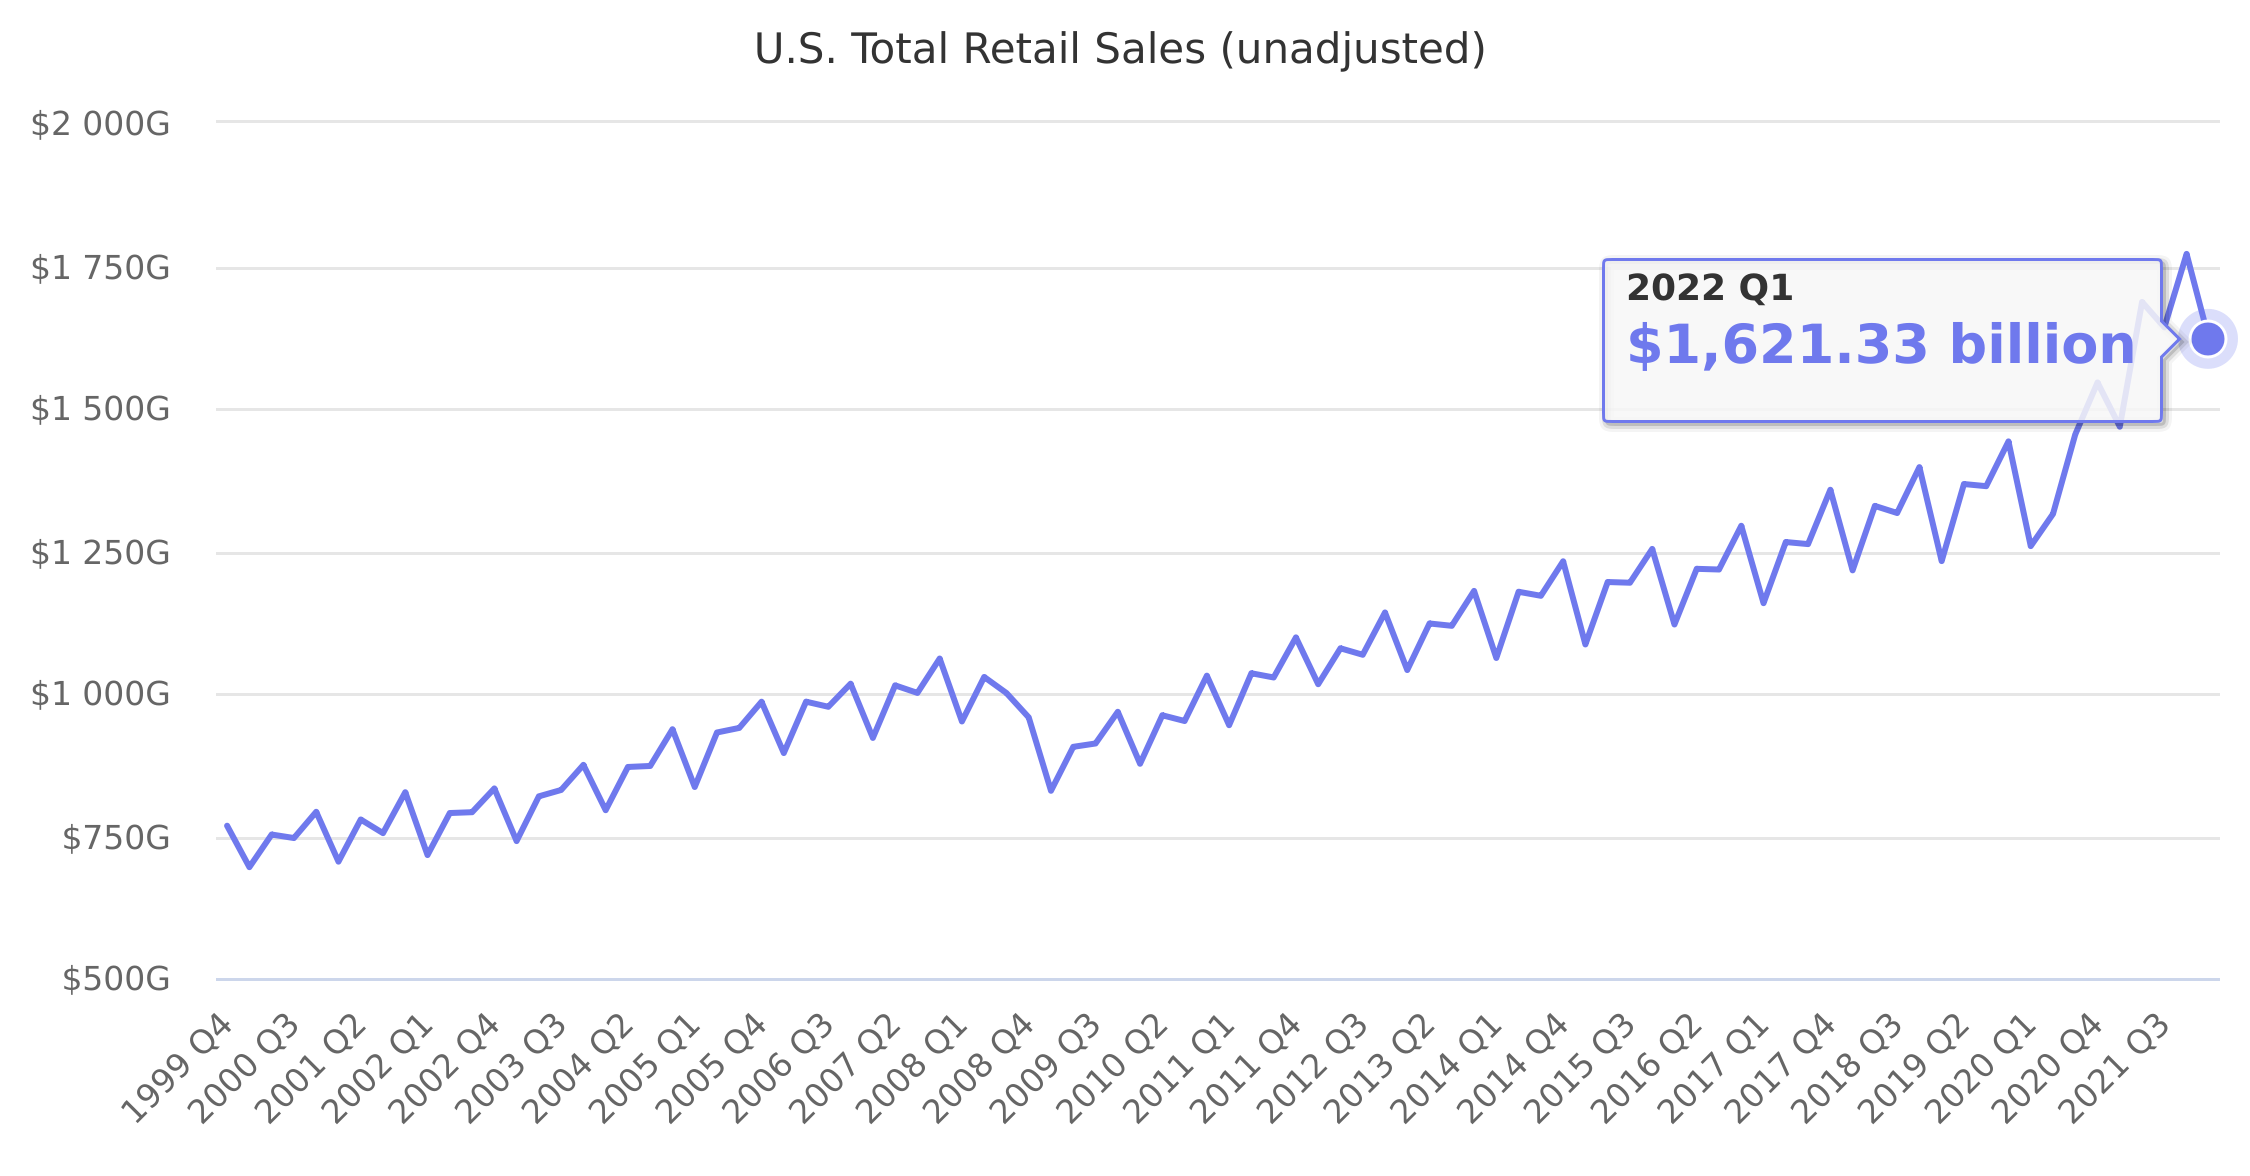 U.S. Total Retail Sales (unadjusted) 2008-2017